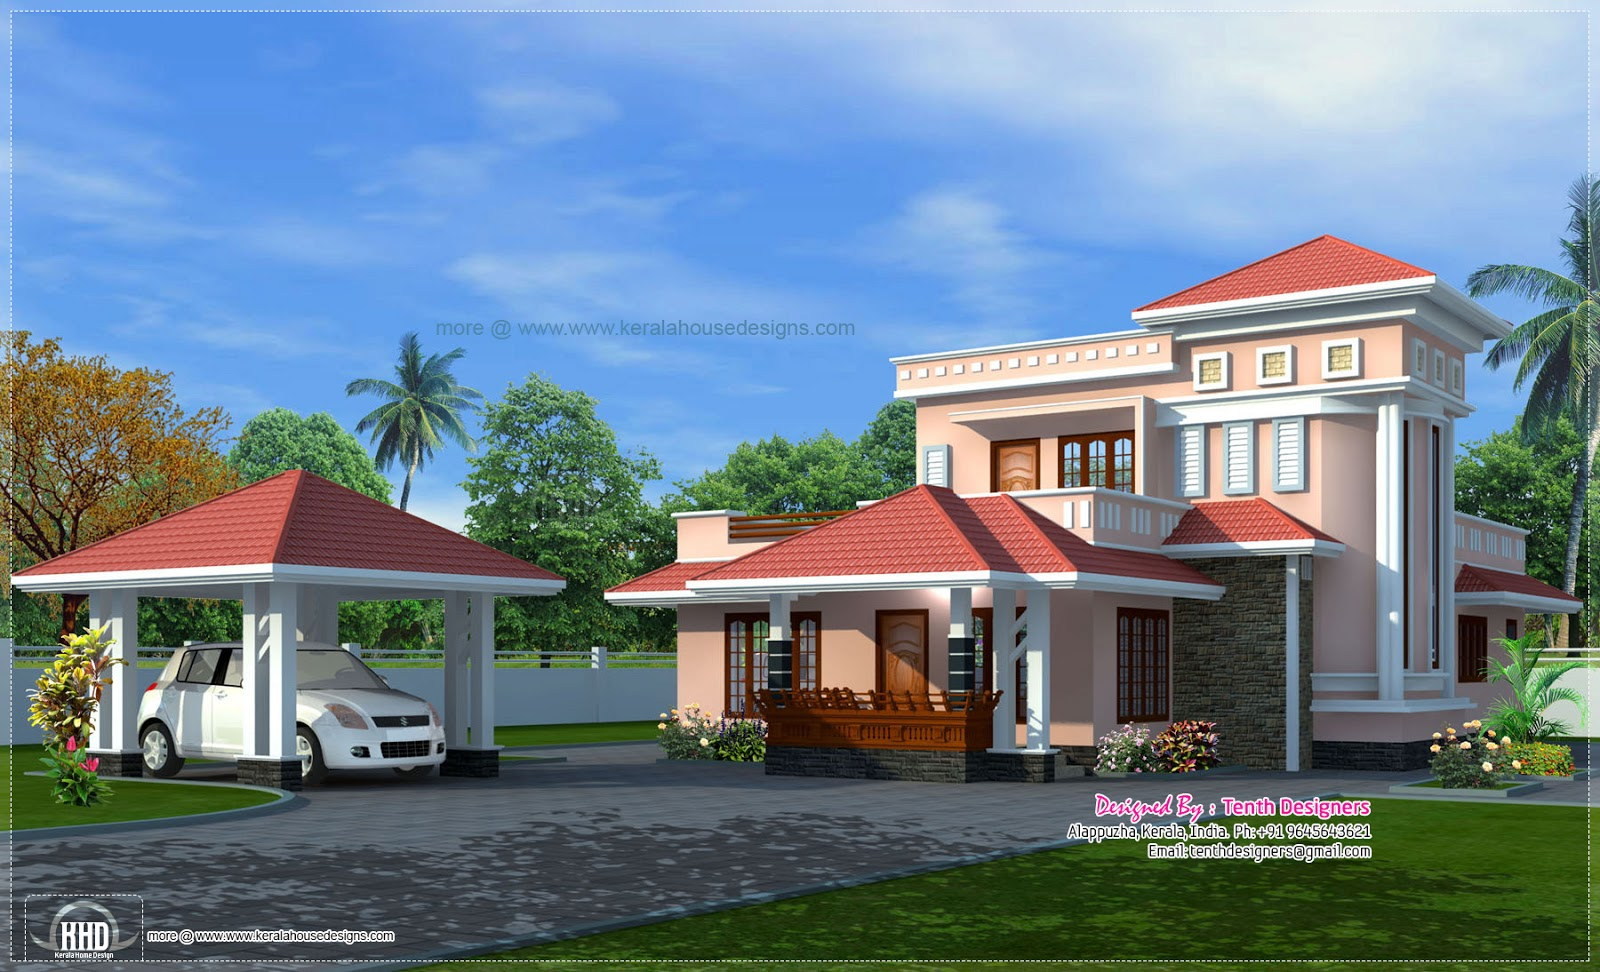 House Exterior With Separate Car Porch Home Kerala Plans